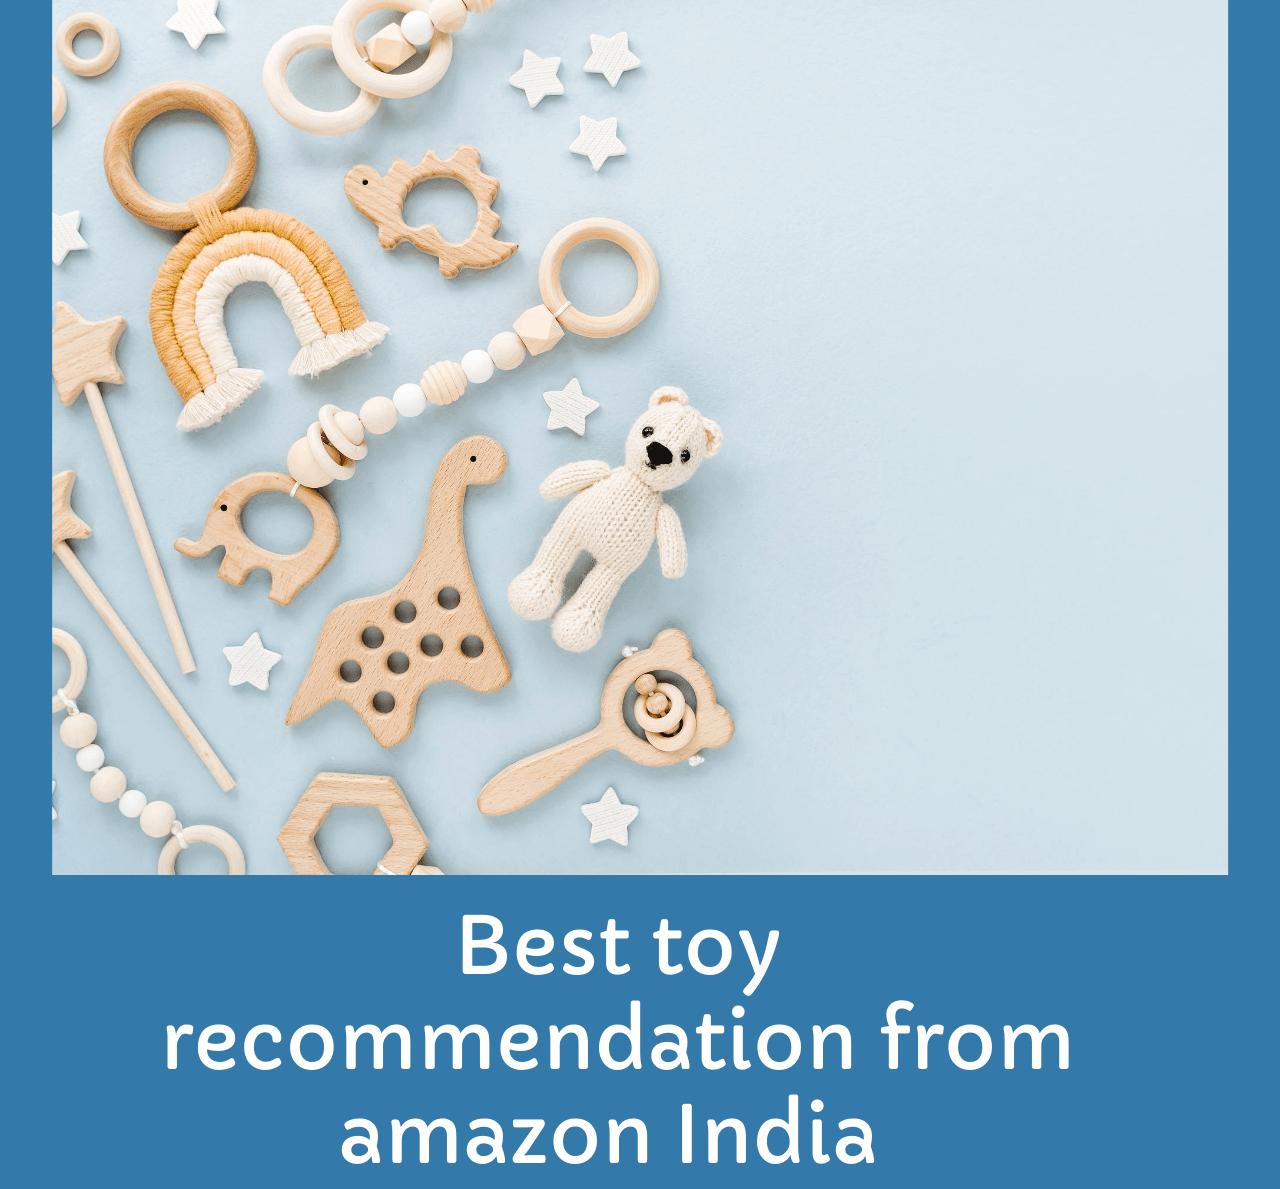 Best toy recommendation